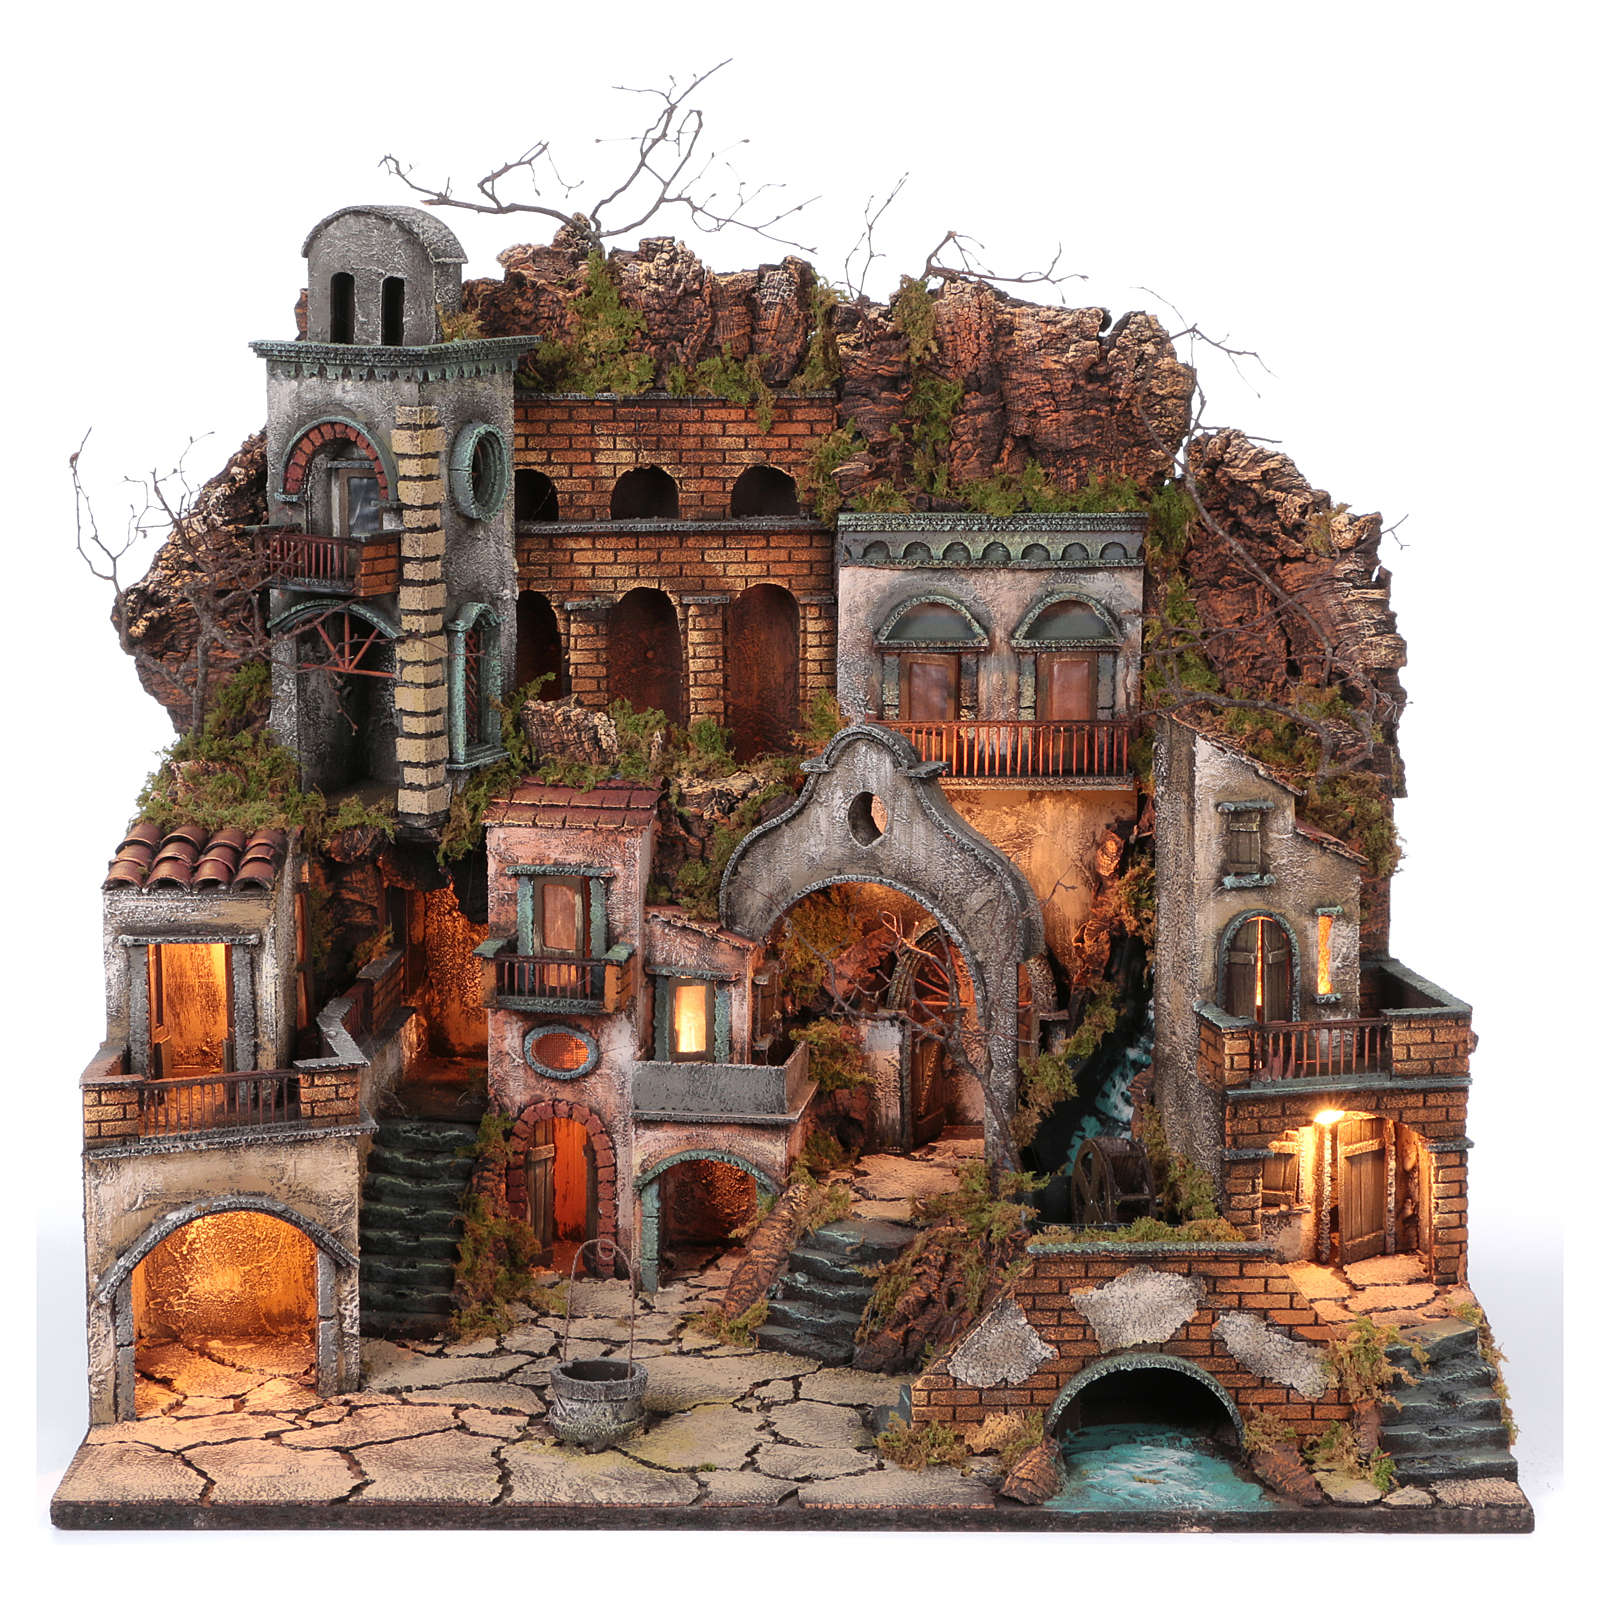 Old hamlet with waterfall and mill for Nativity Scene 70x80x60 18th-century Neapolitan style 4